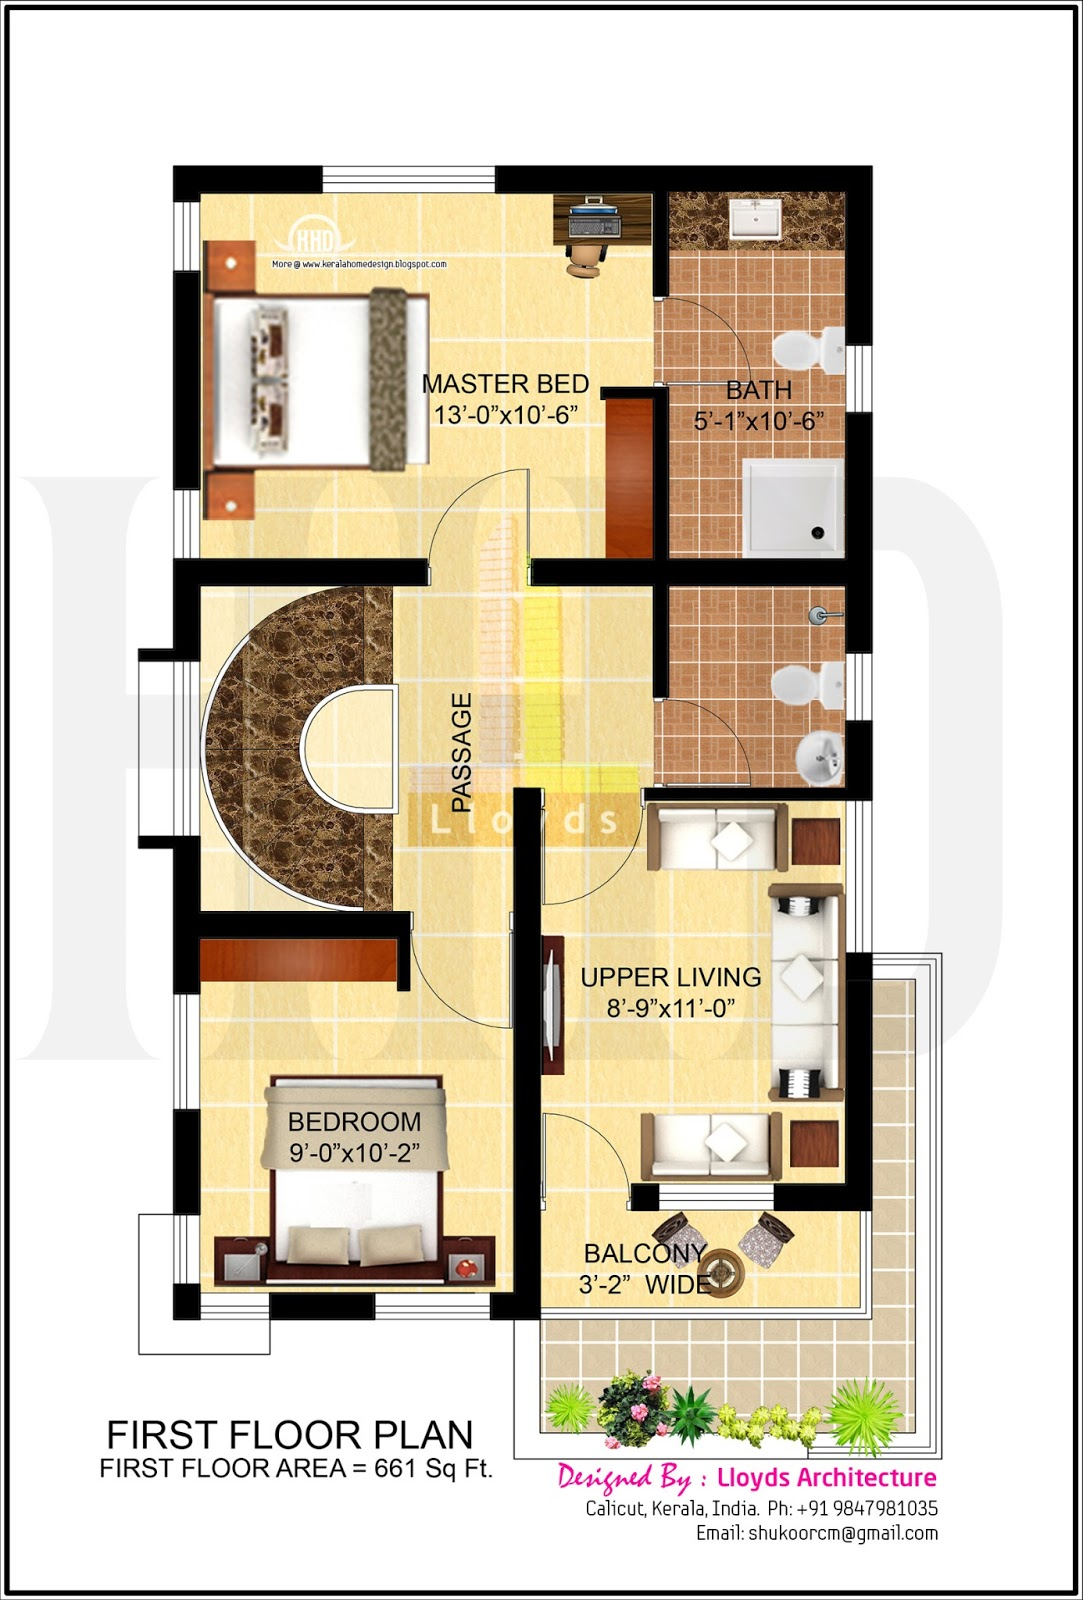 4 bedroom house plan in less than 3 cents kerala home for Home design layout plan